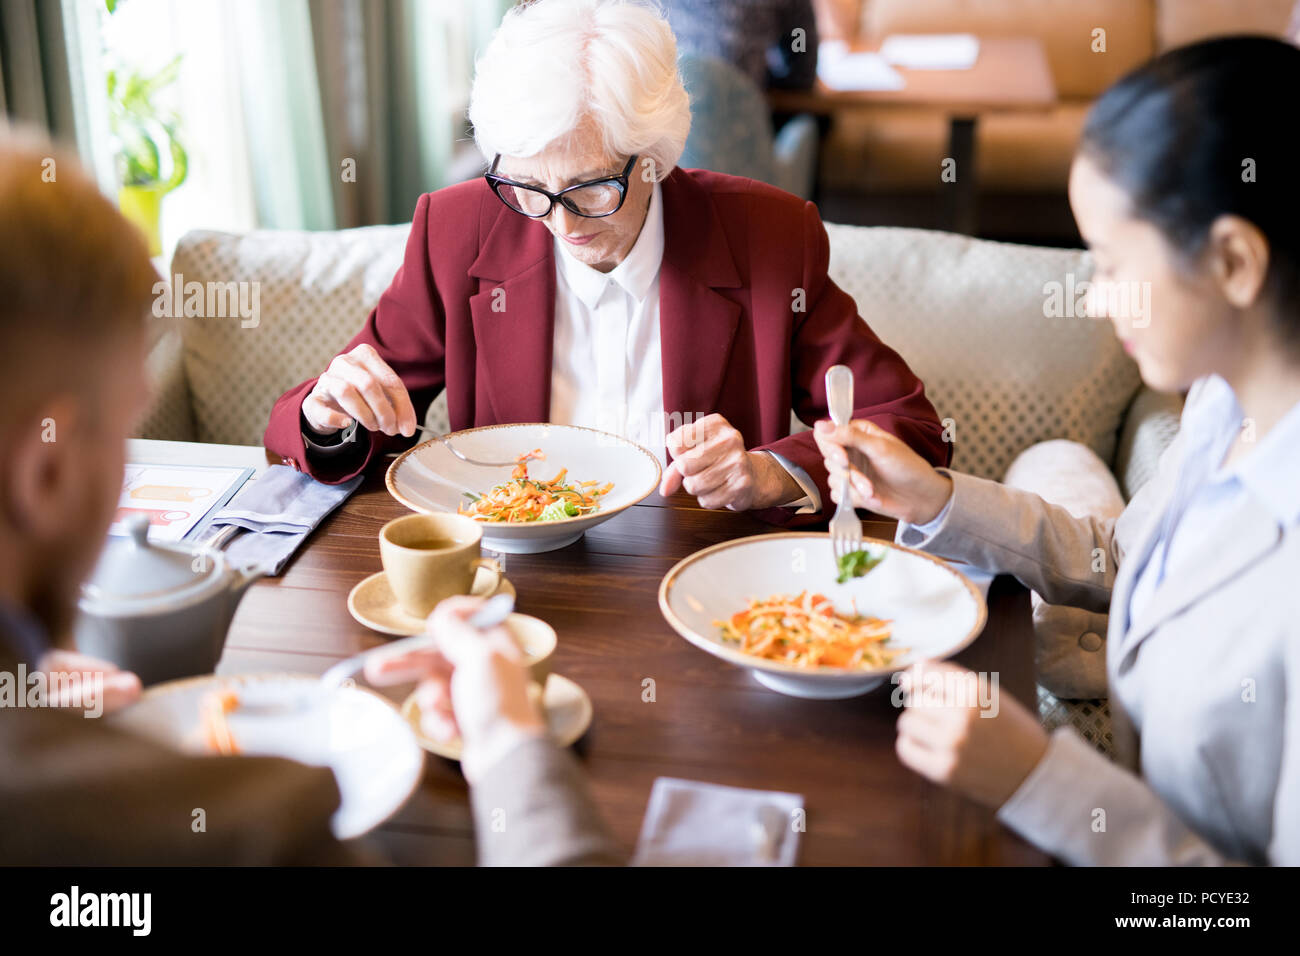 People at business lunch - Stock Image